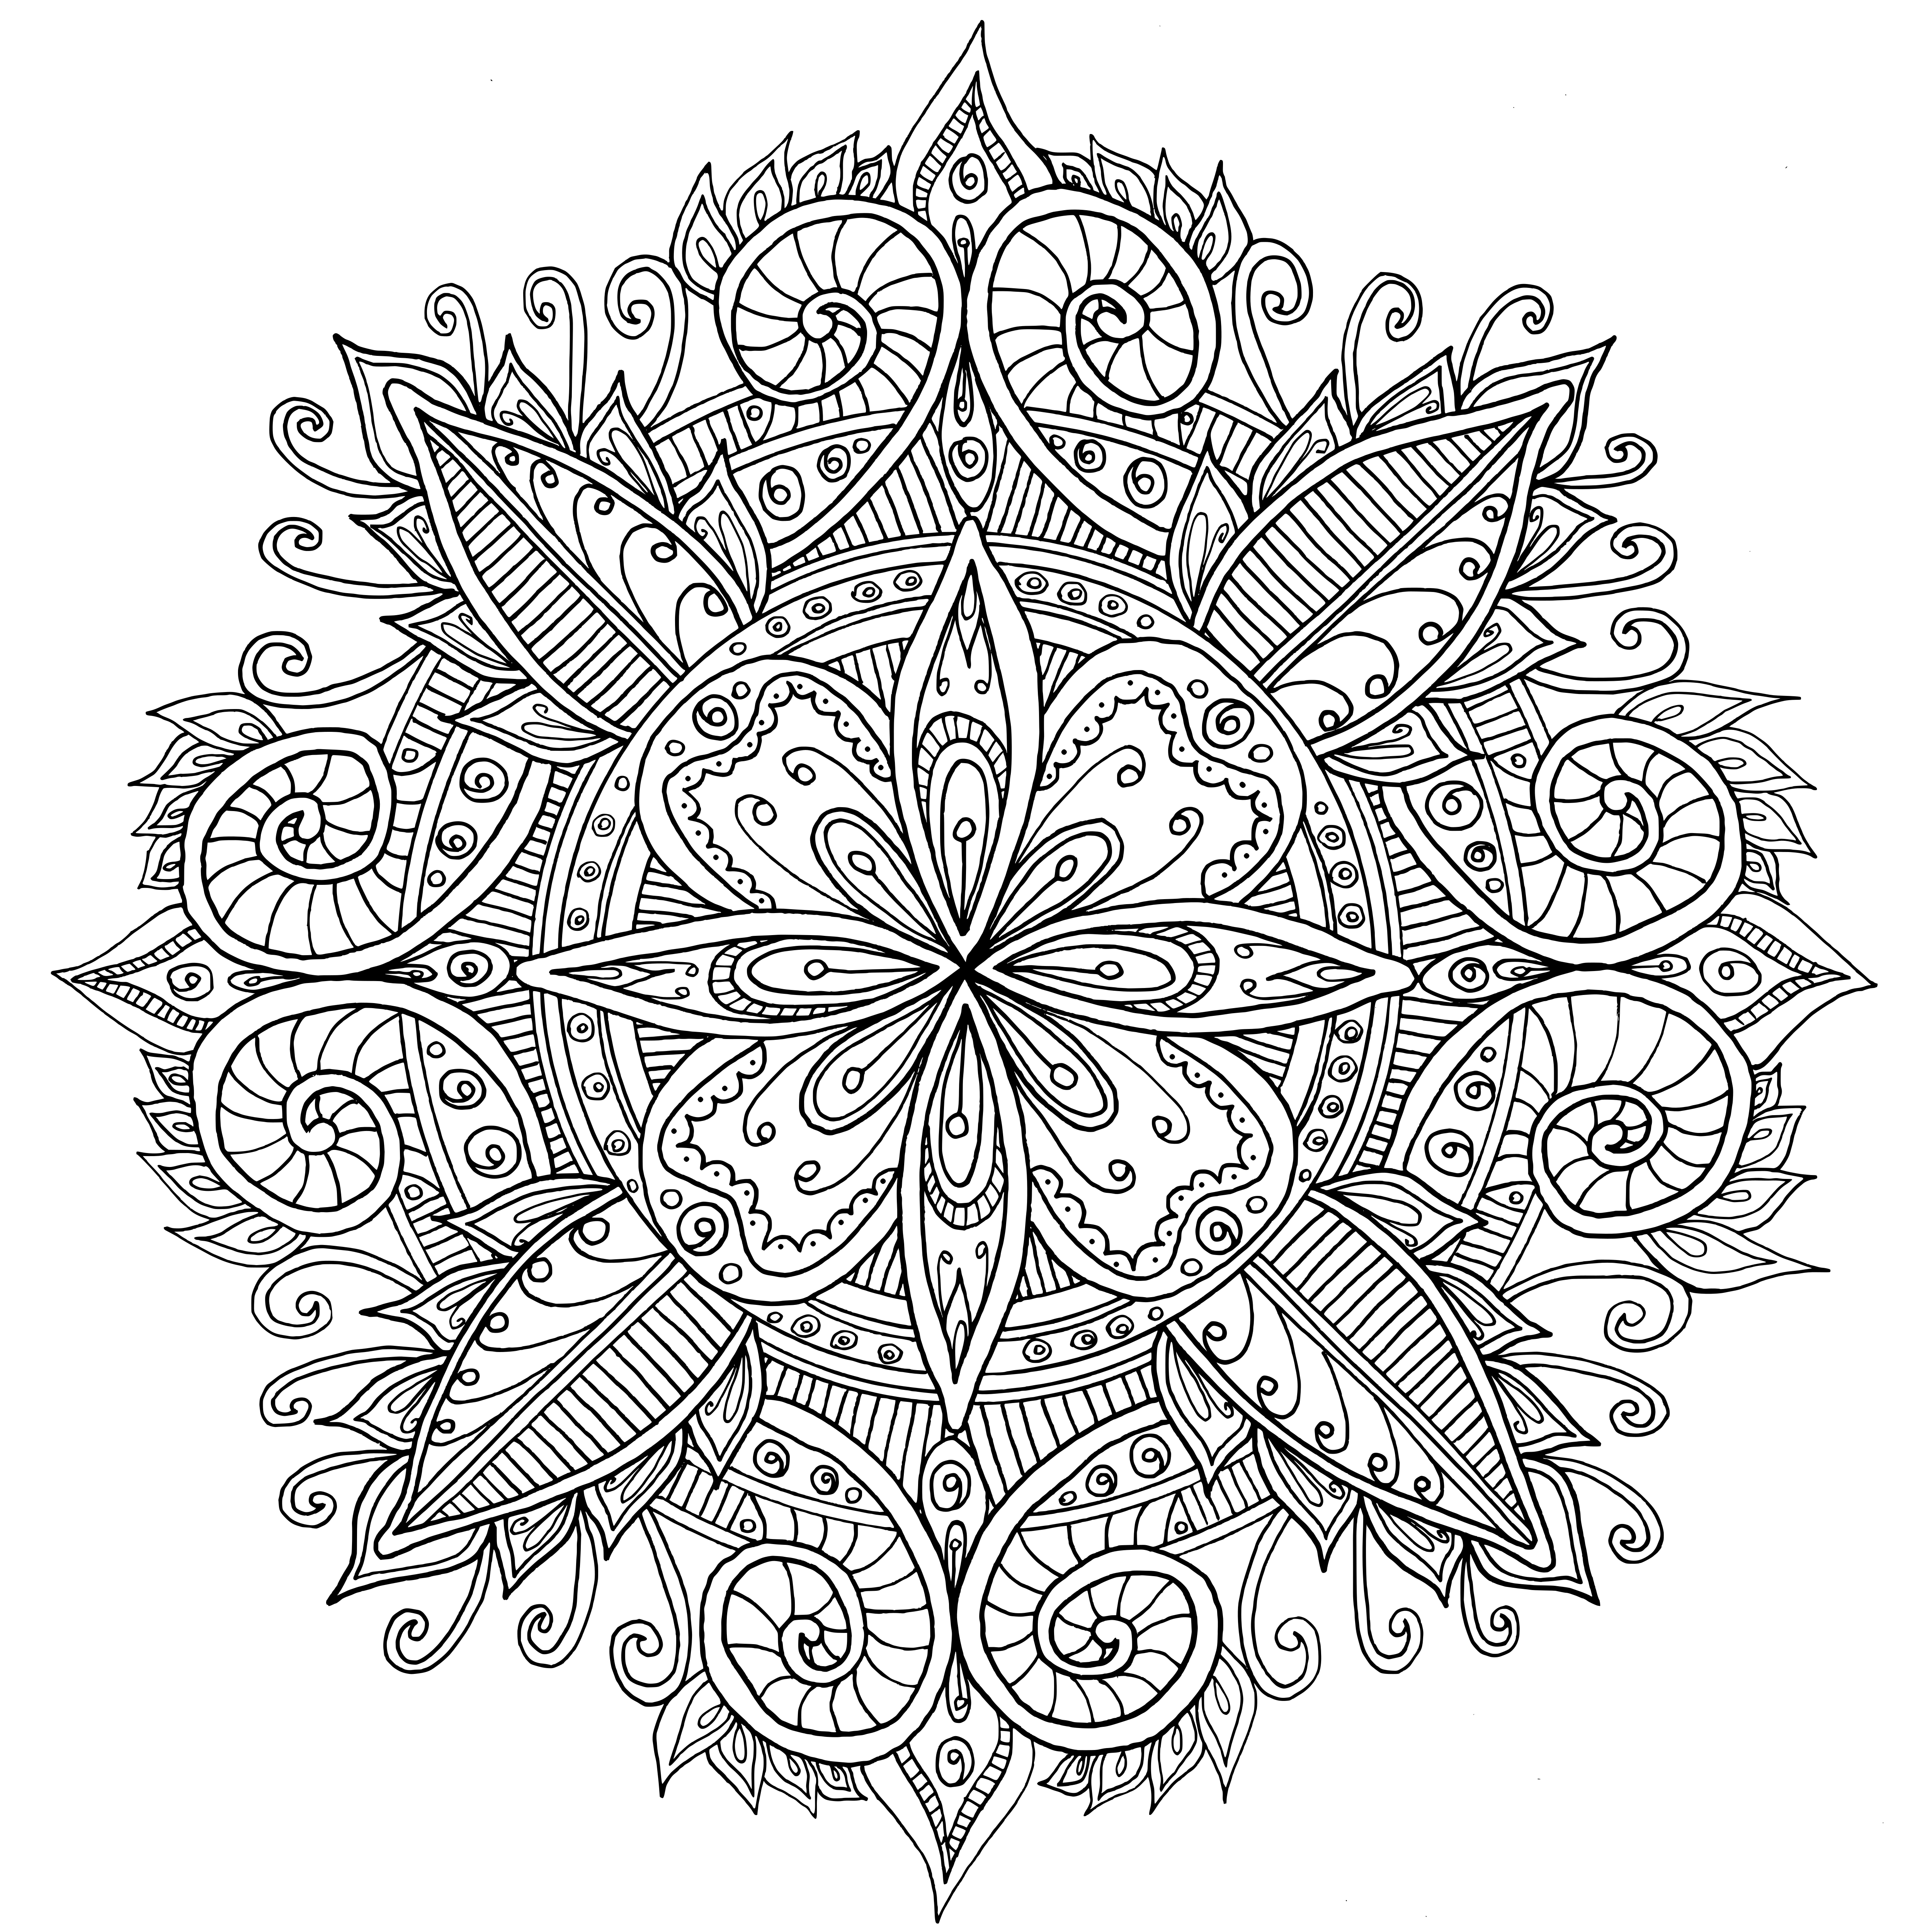 mandalas coloring pages | Weekend Mandala by WelshPixie on DeviantArt